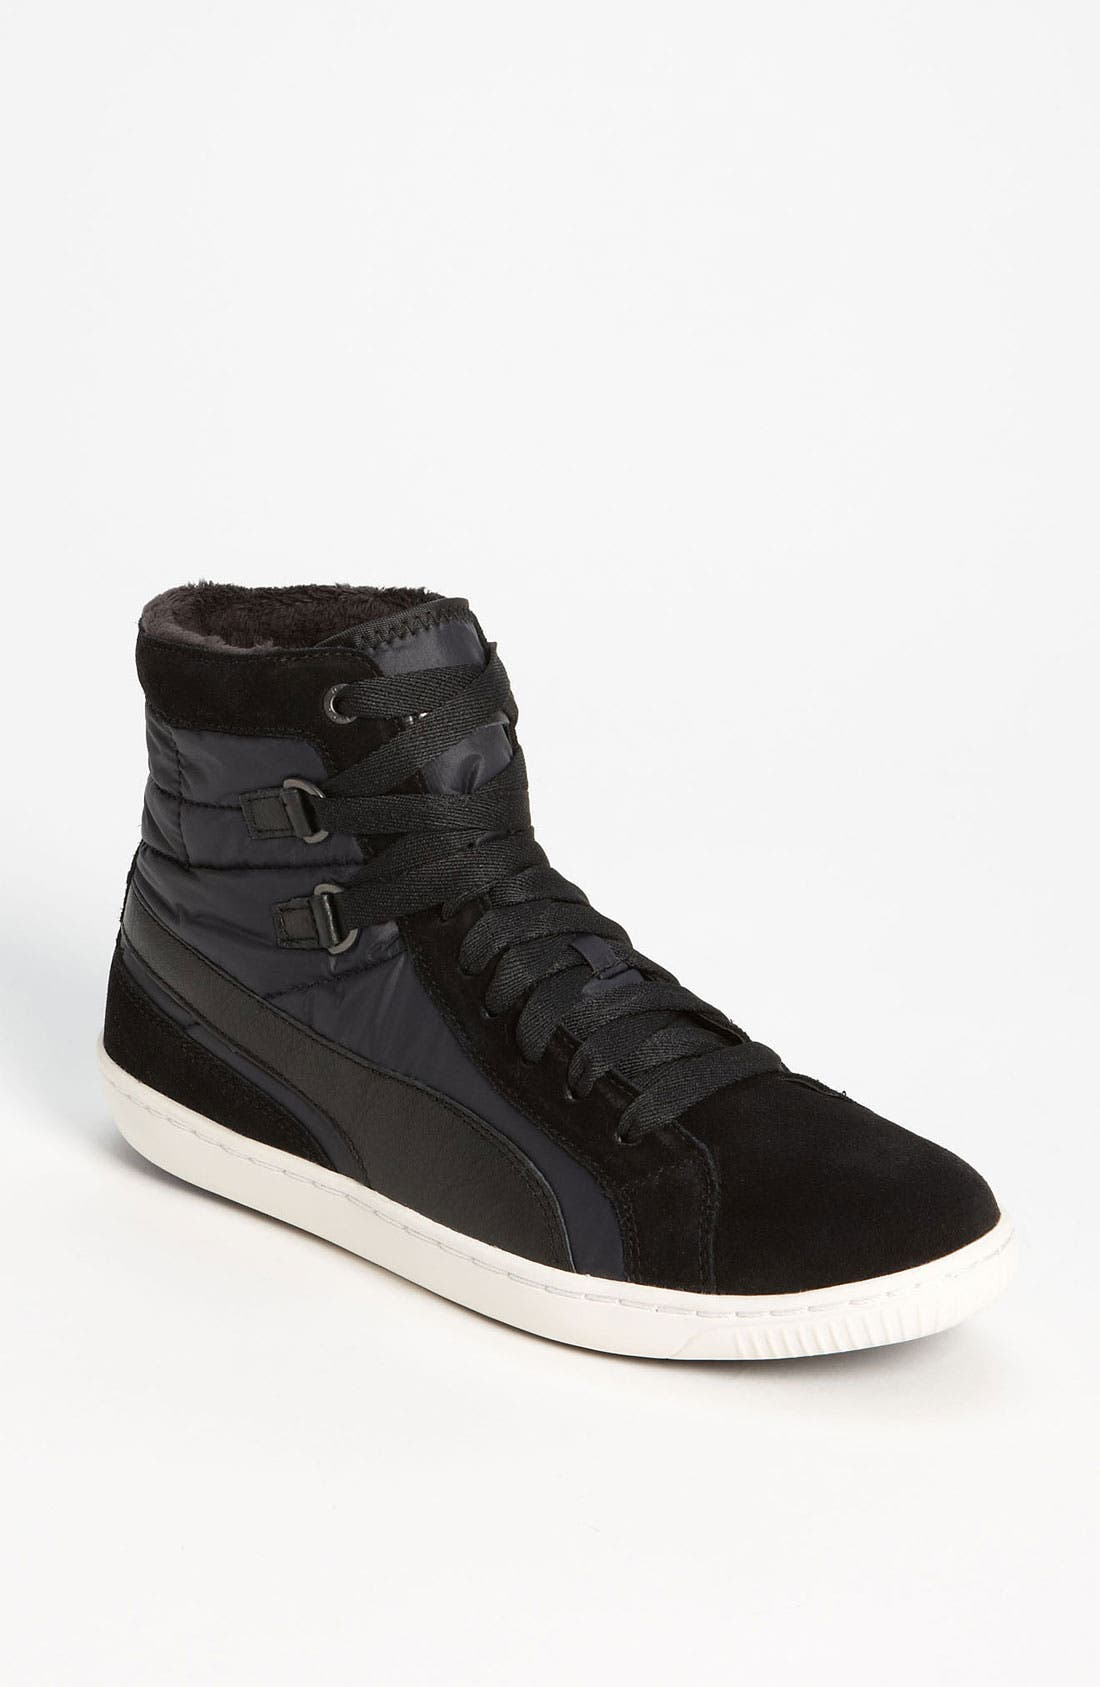 Alternate Image 1 Selected - PUMA 'Josey Winter' Sneaker (Women)